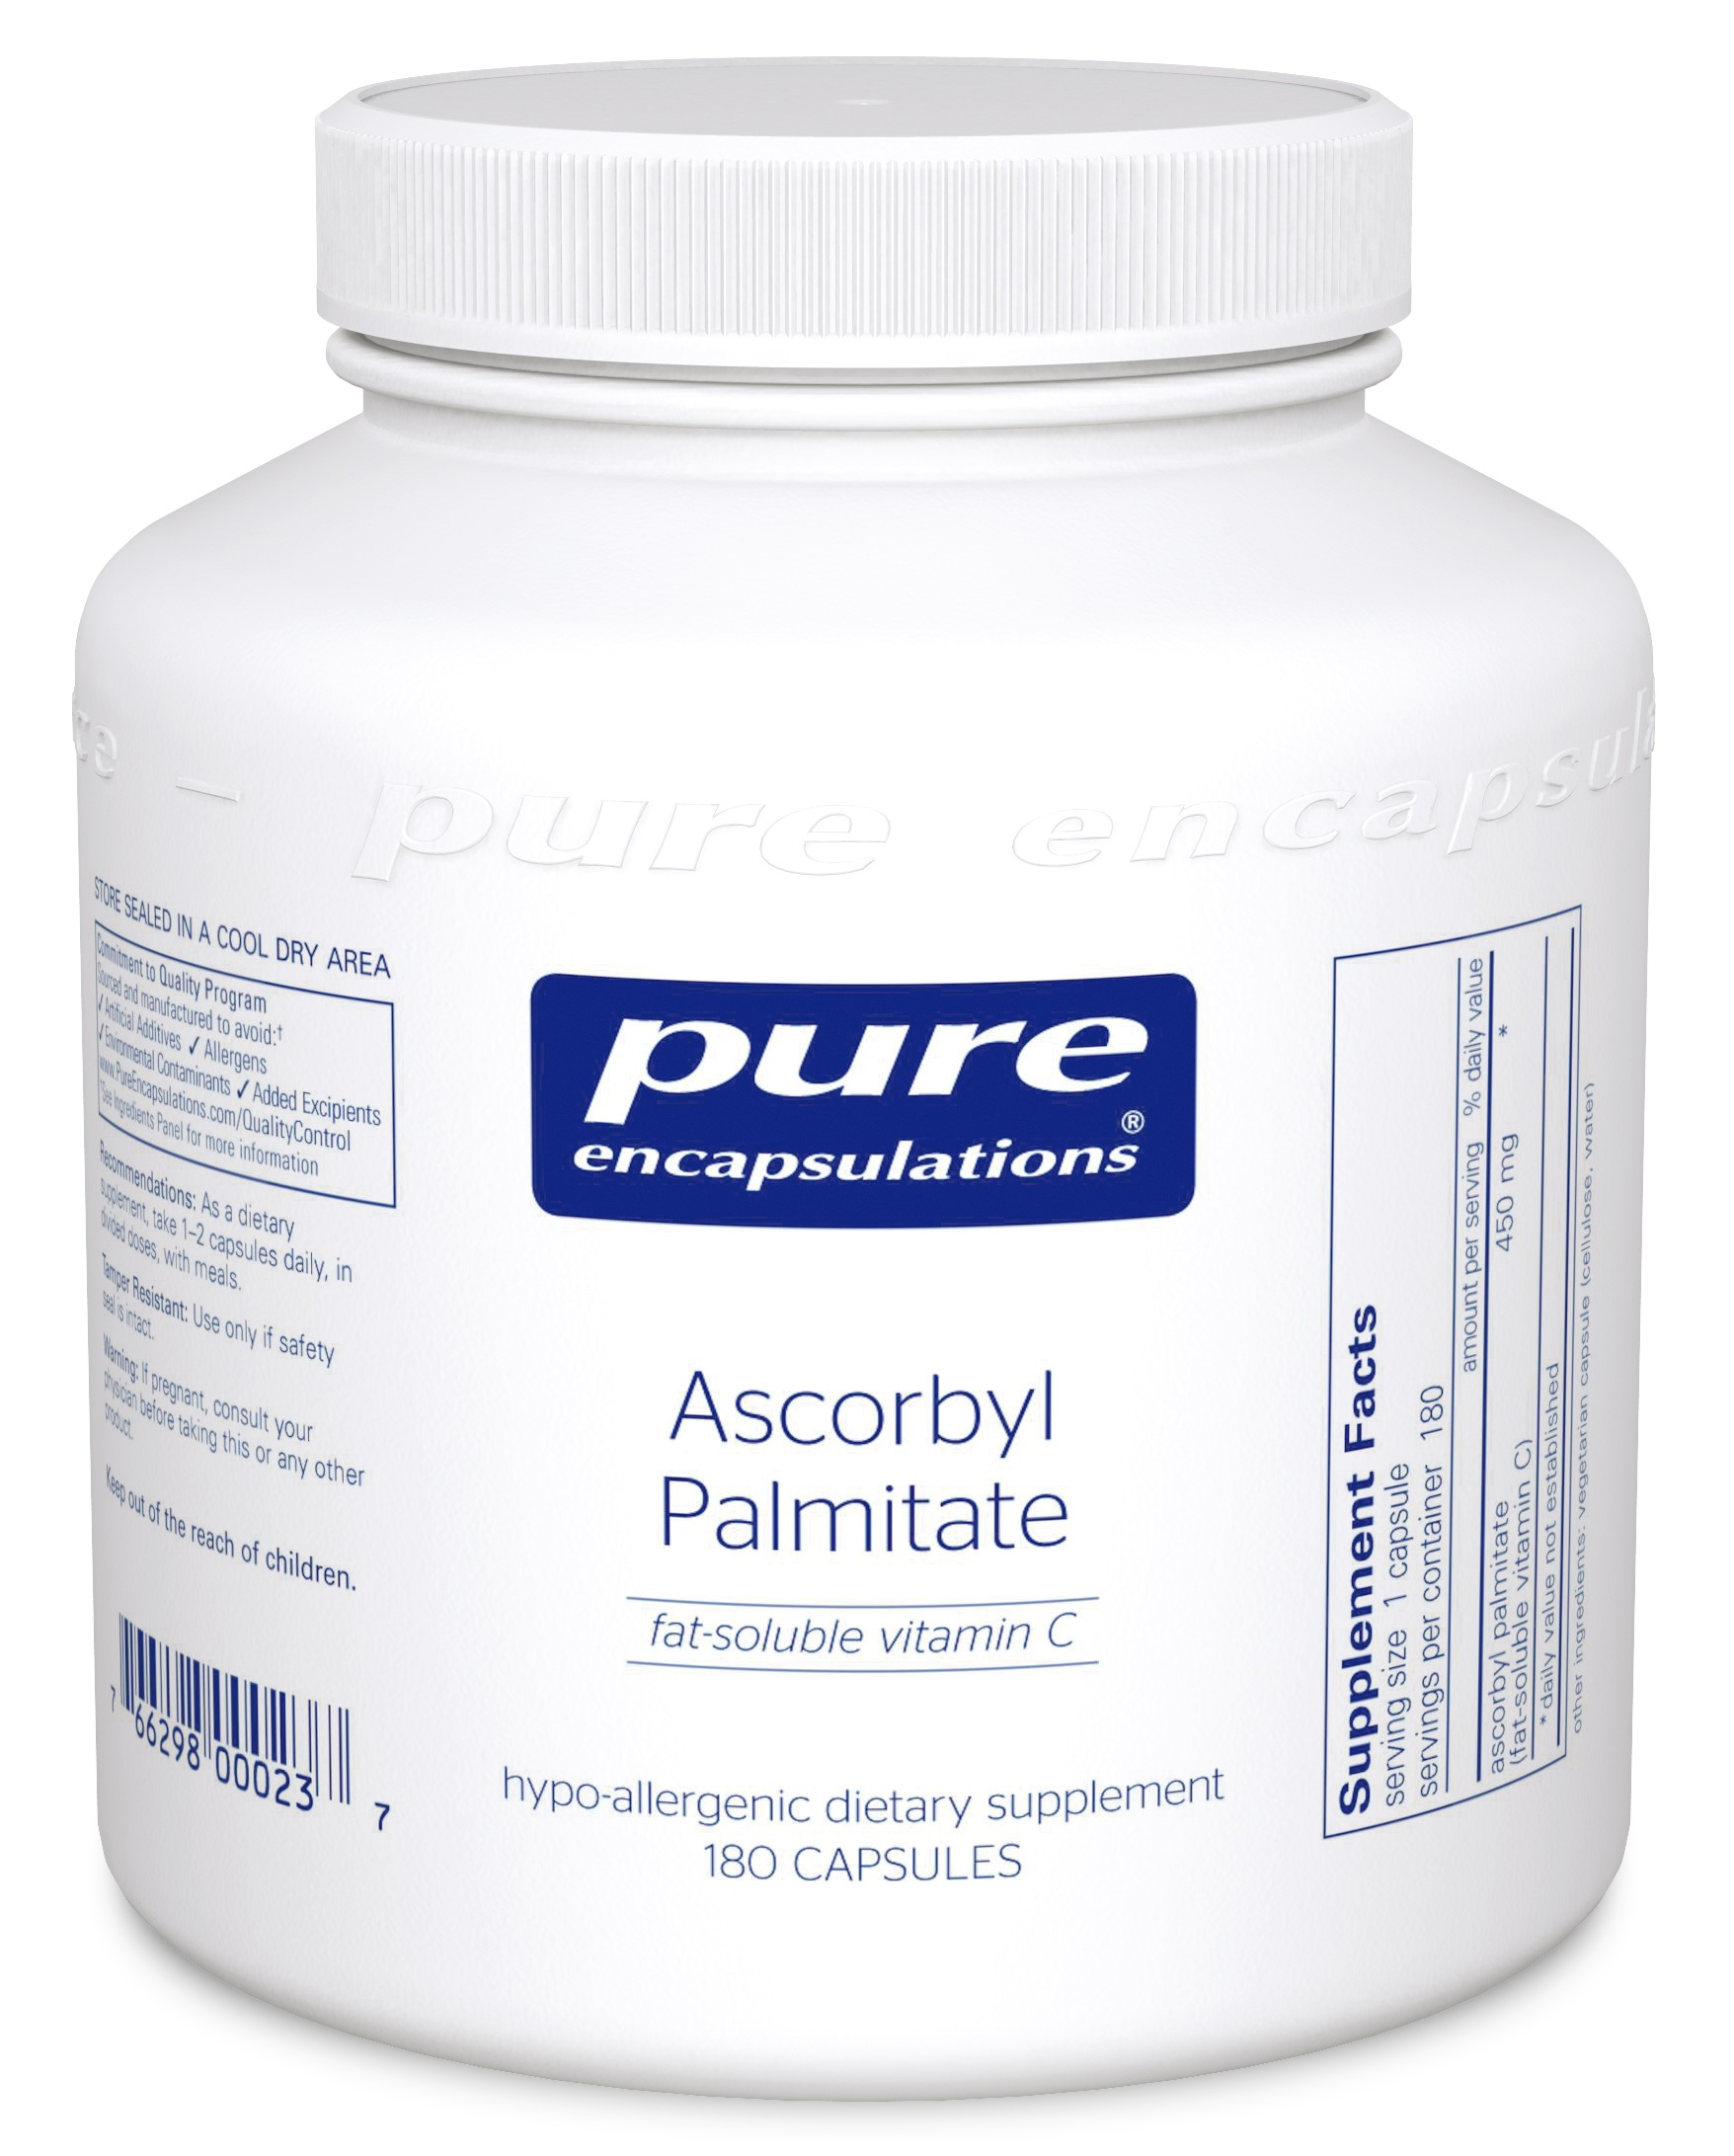 Pure Encapsulations Ascorbyl Palmitate